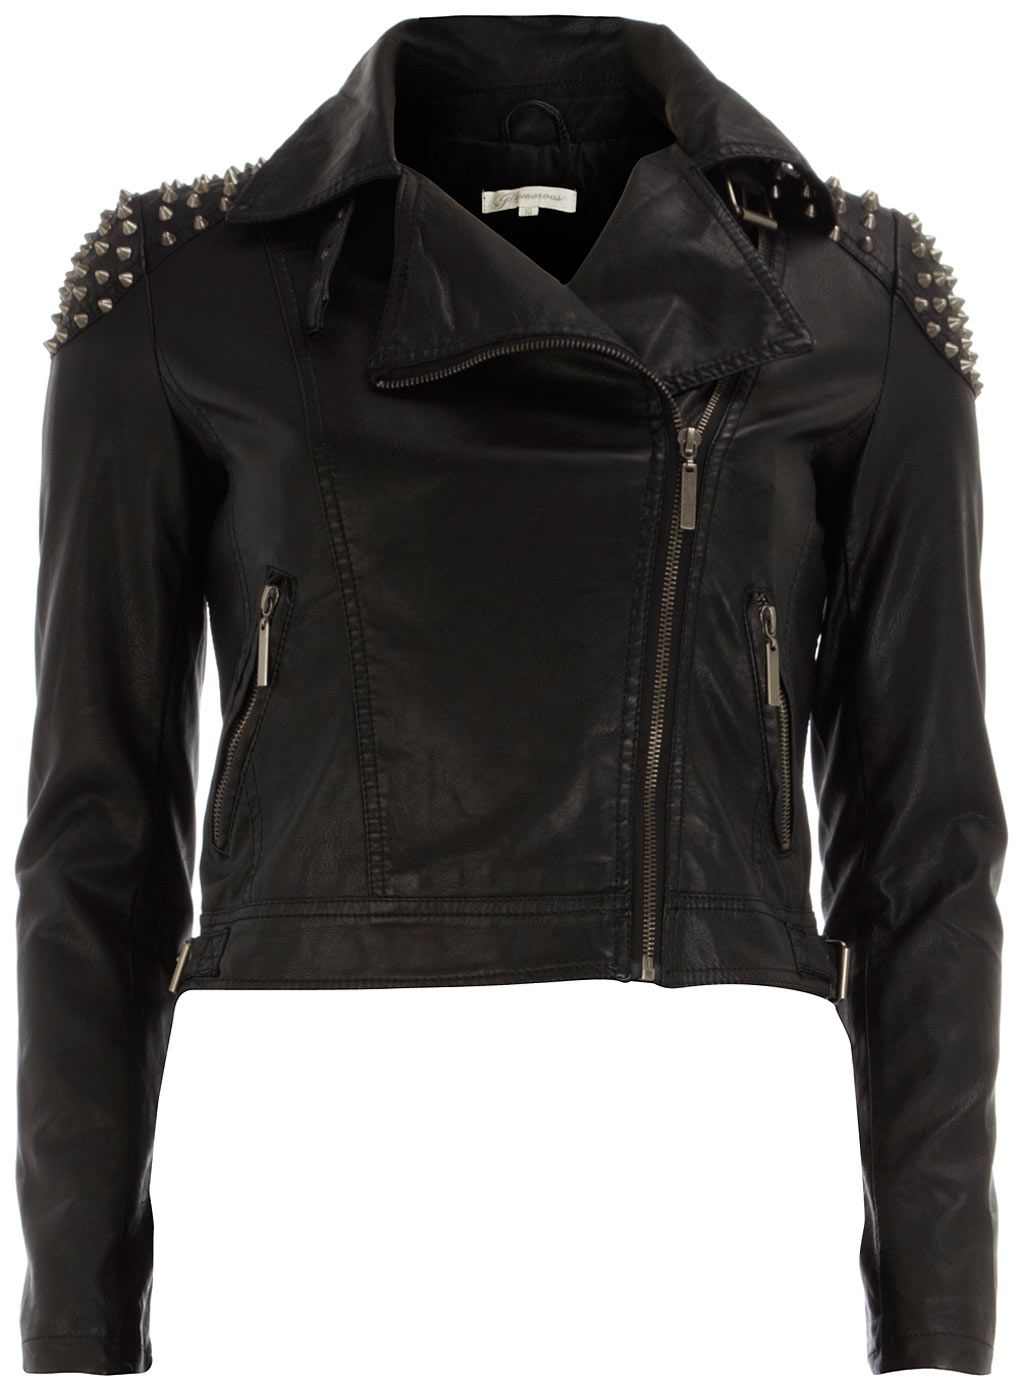 Celebrities who wear, use, or own Dorothy Perkins Black Stud PU Biker  Jacket. Also discover the movies, TV shows, and events associated with Dorothy  Perkins ...